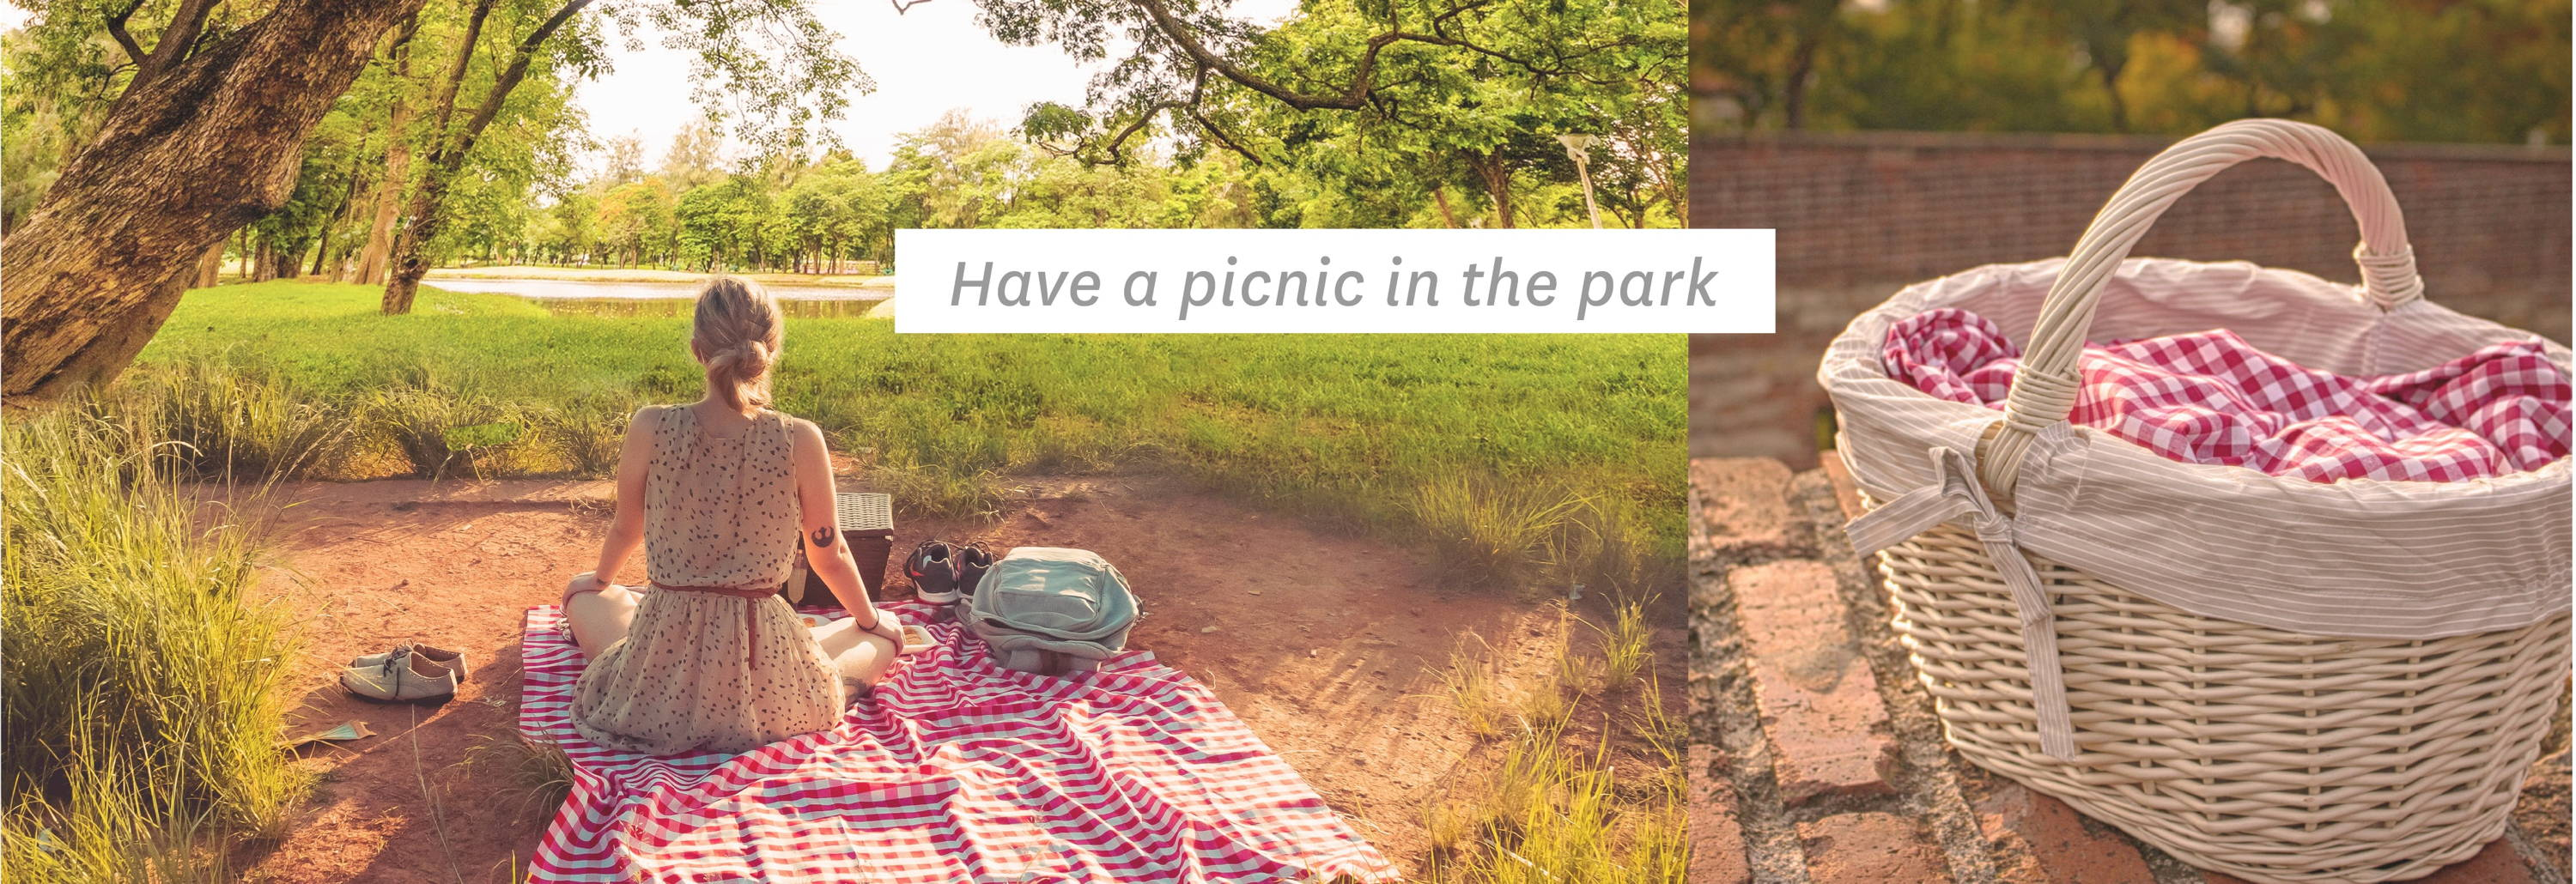 Have a picnic in the park